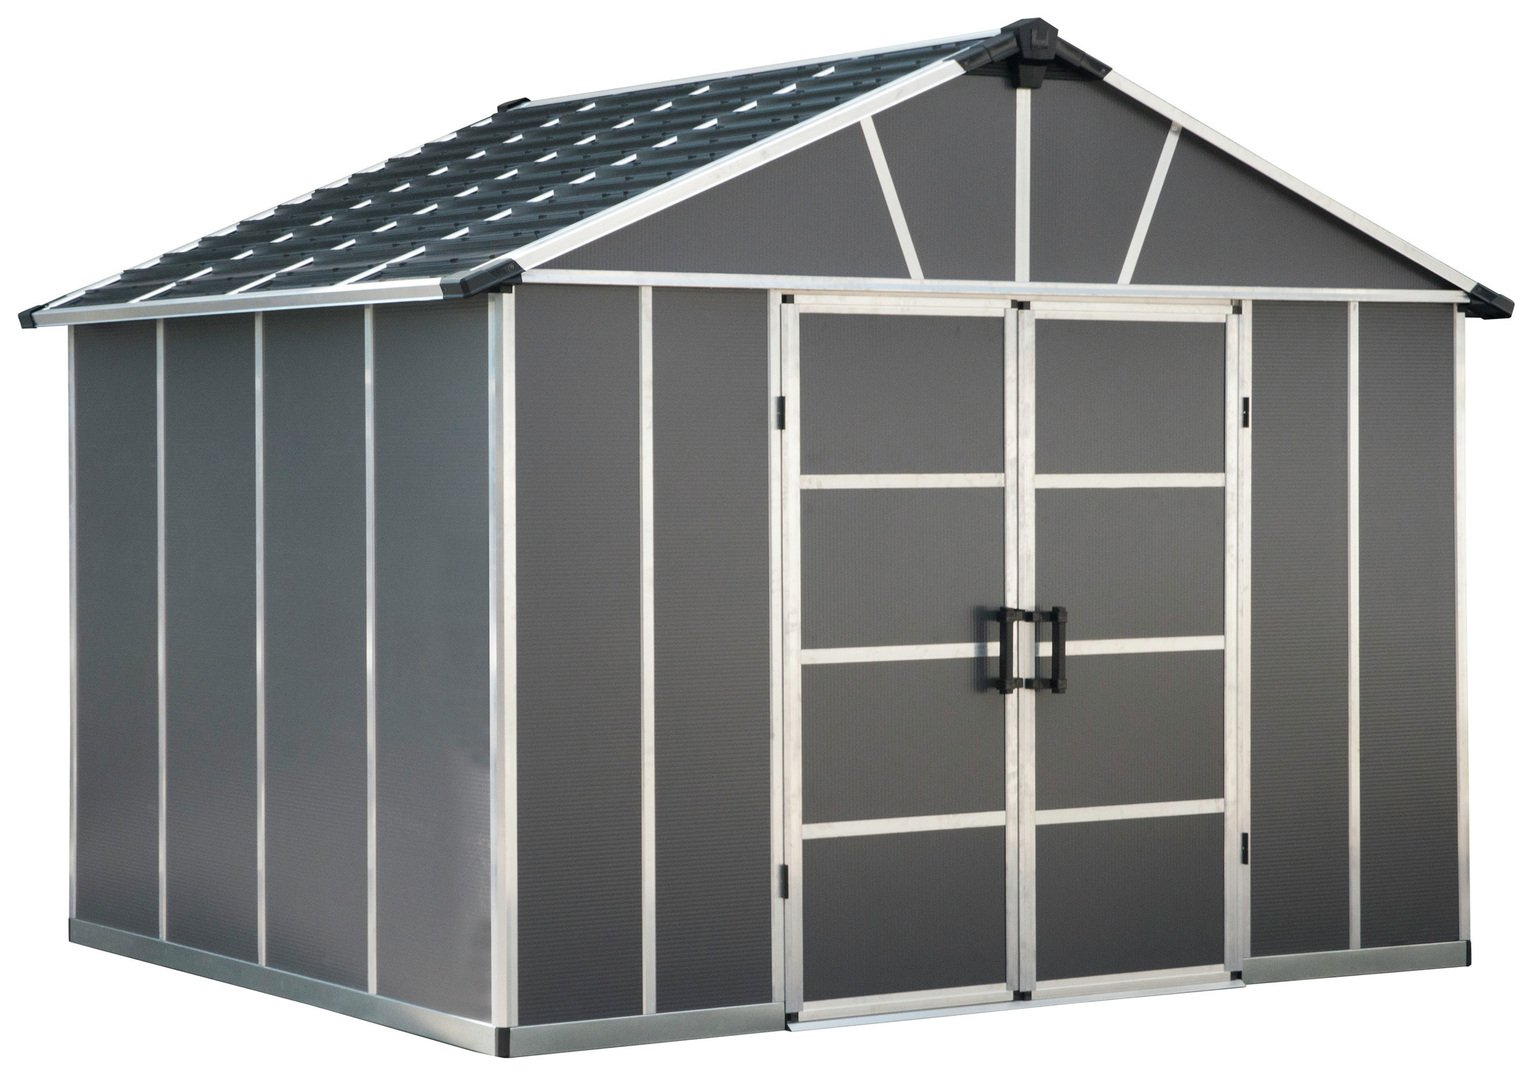 Palram Yukon Plastic 11x9ft Shed with Floor - Dark Grey Best Price, Cheapest Prices